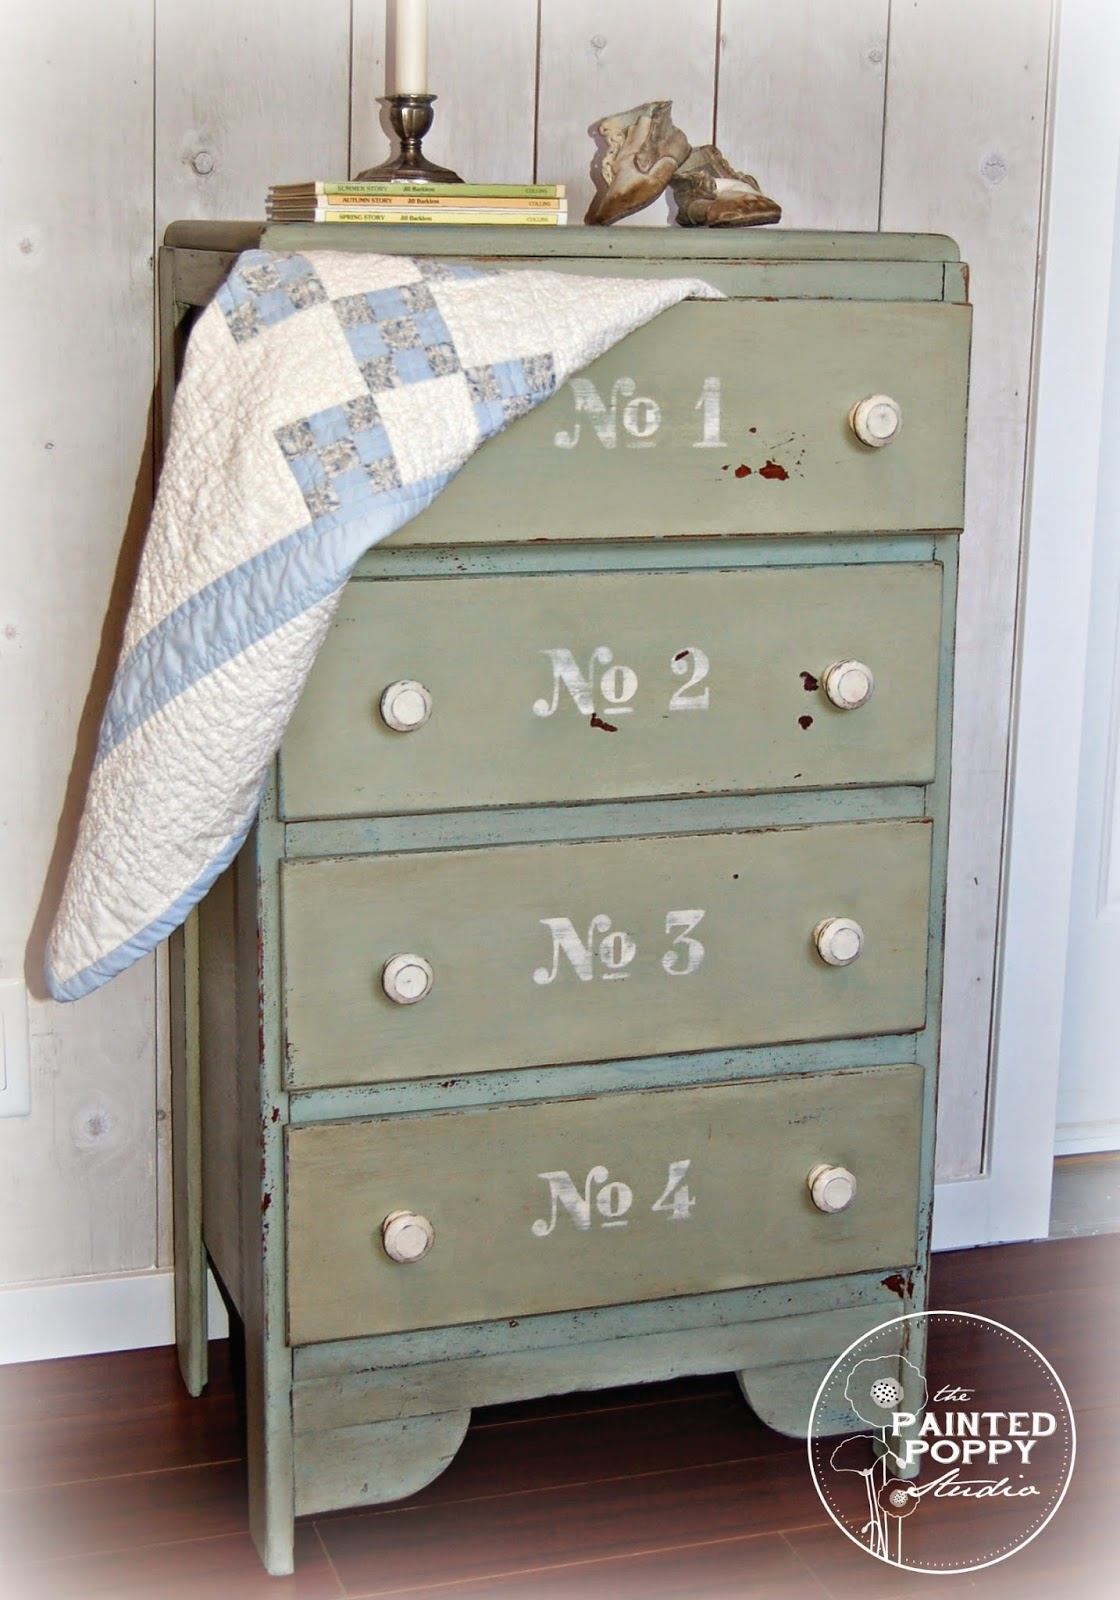 Numbered Mint Dresser Makeover - by The Painted Poppy Studio